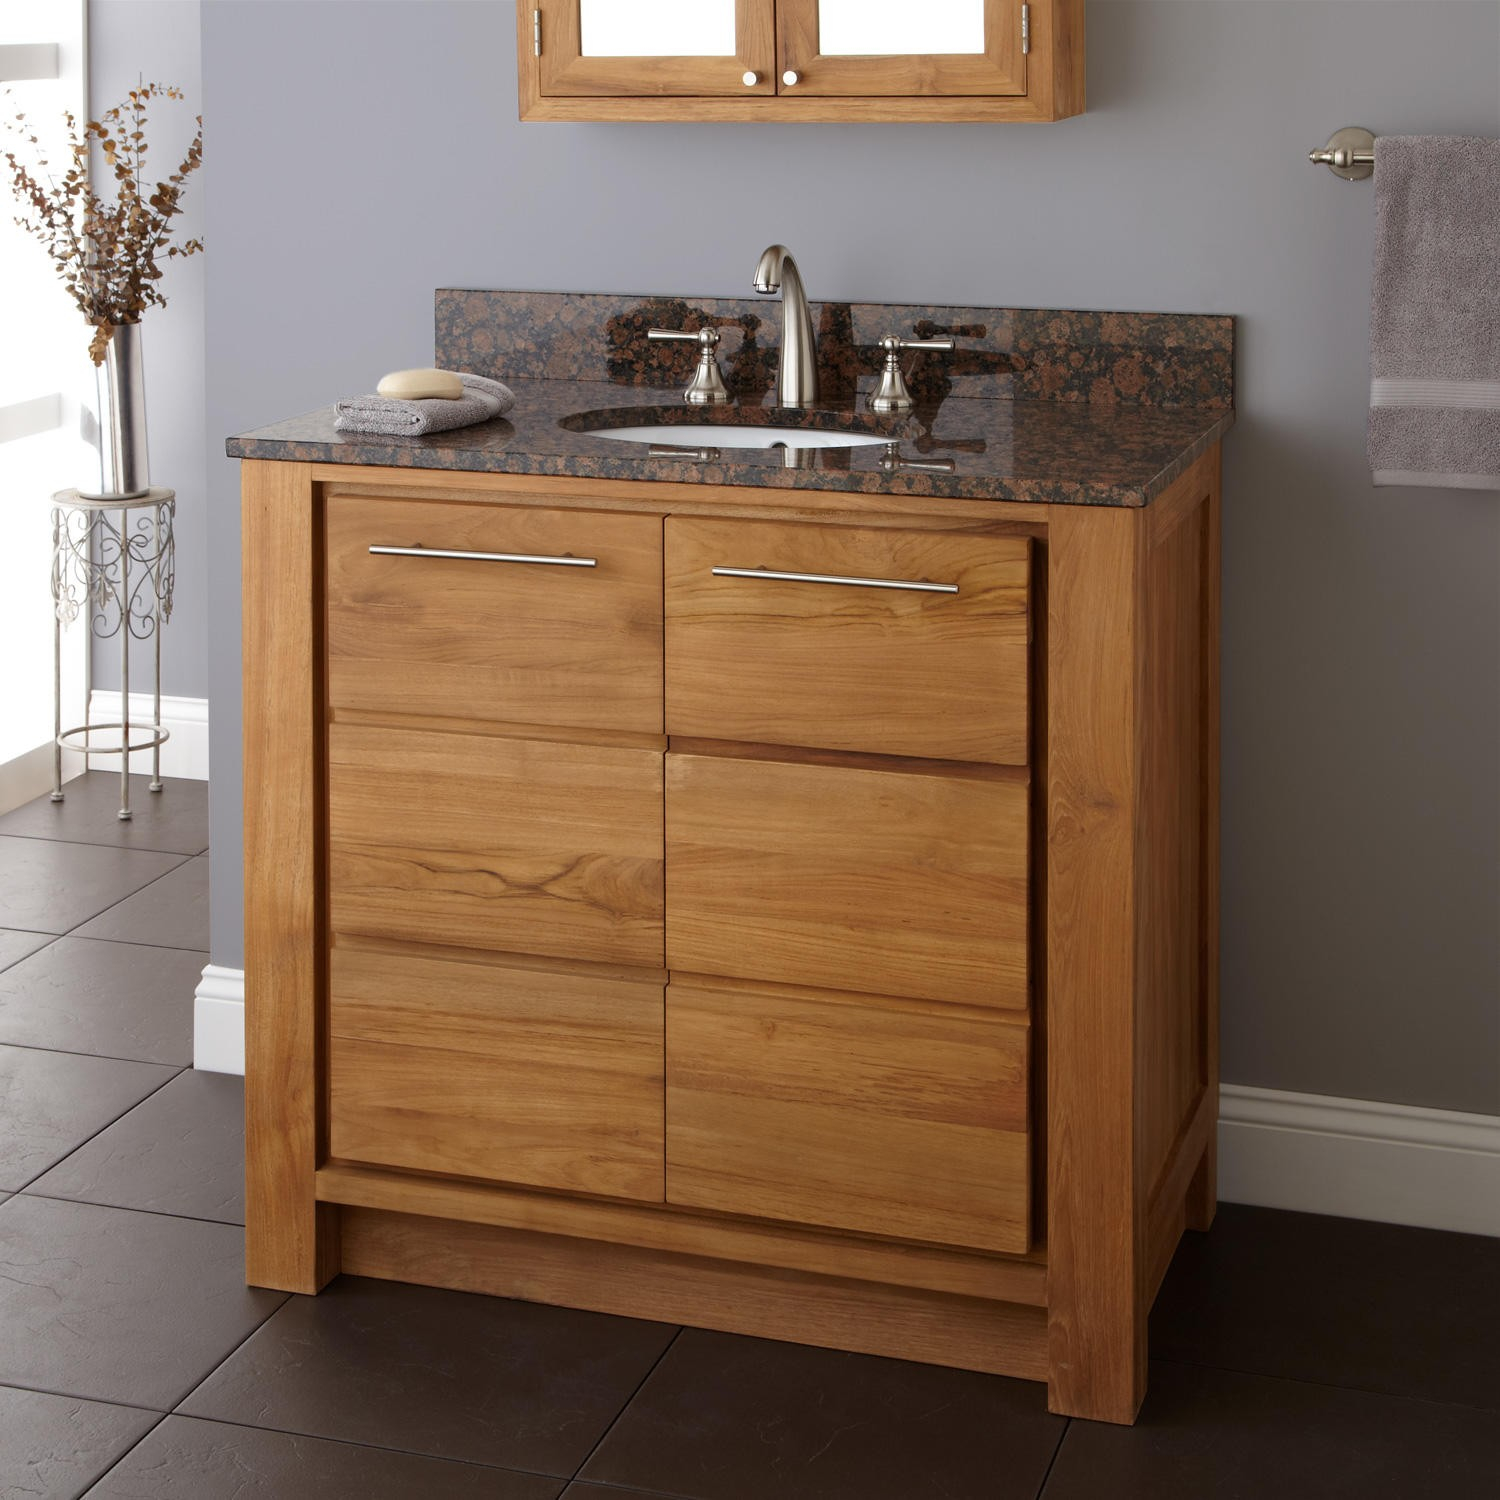 Fancy Picture 47 Of 50 - 36 Inch Bathroom Vanity Without Top Inspirational for High Quality 36 Bathroom Vanity Without Top